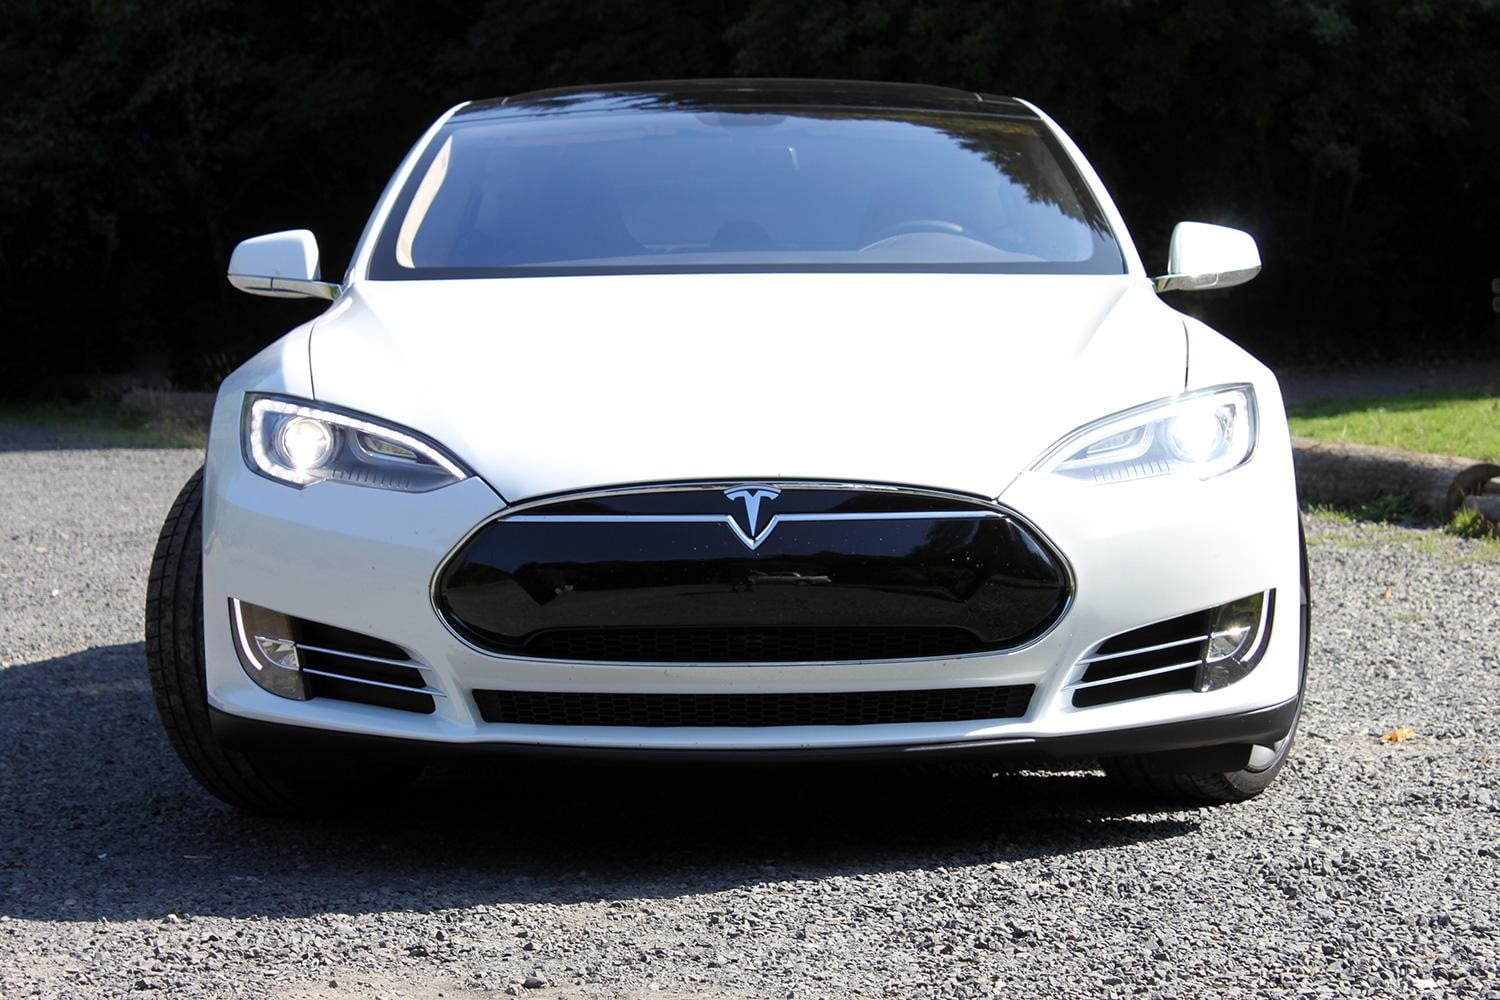 The Tesla Model S and Ford Model T kicked off revolutions in